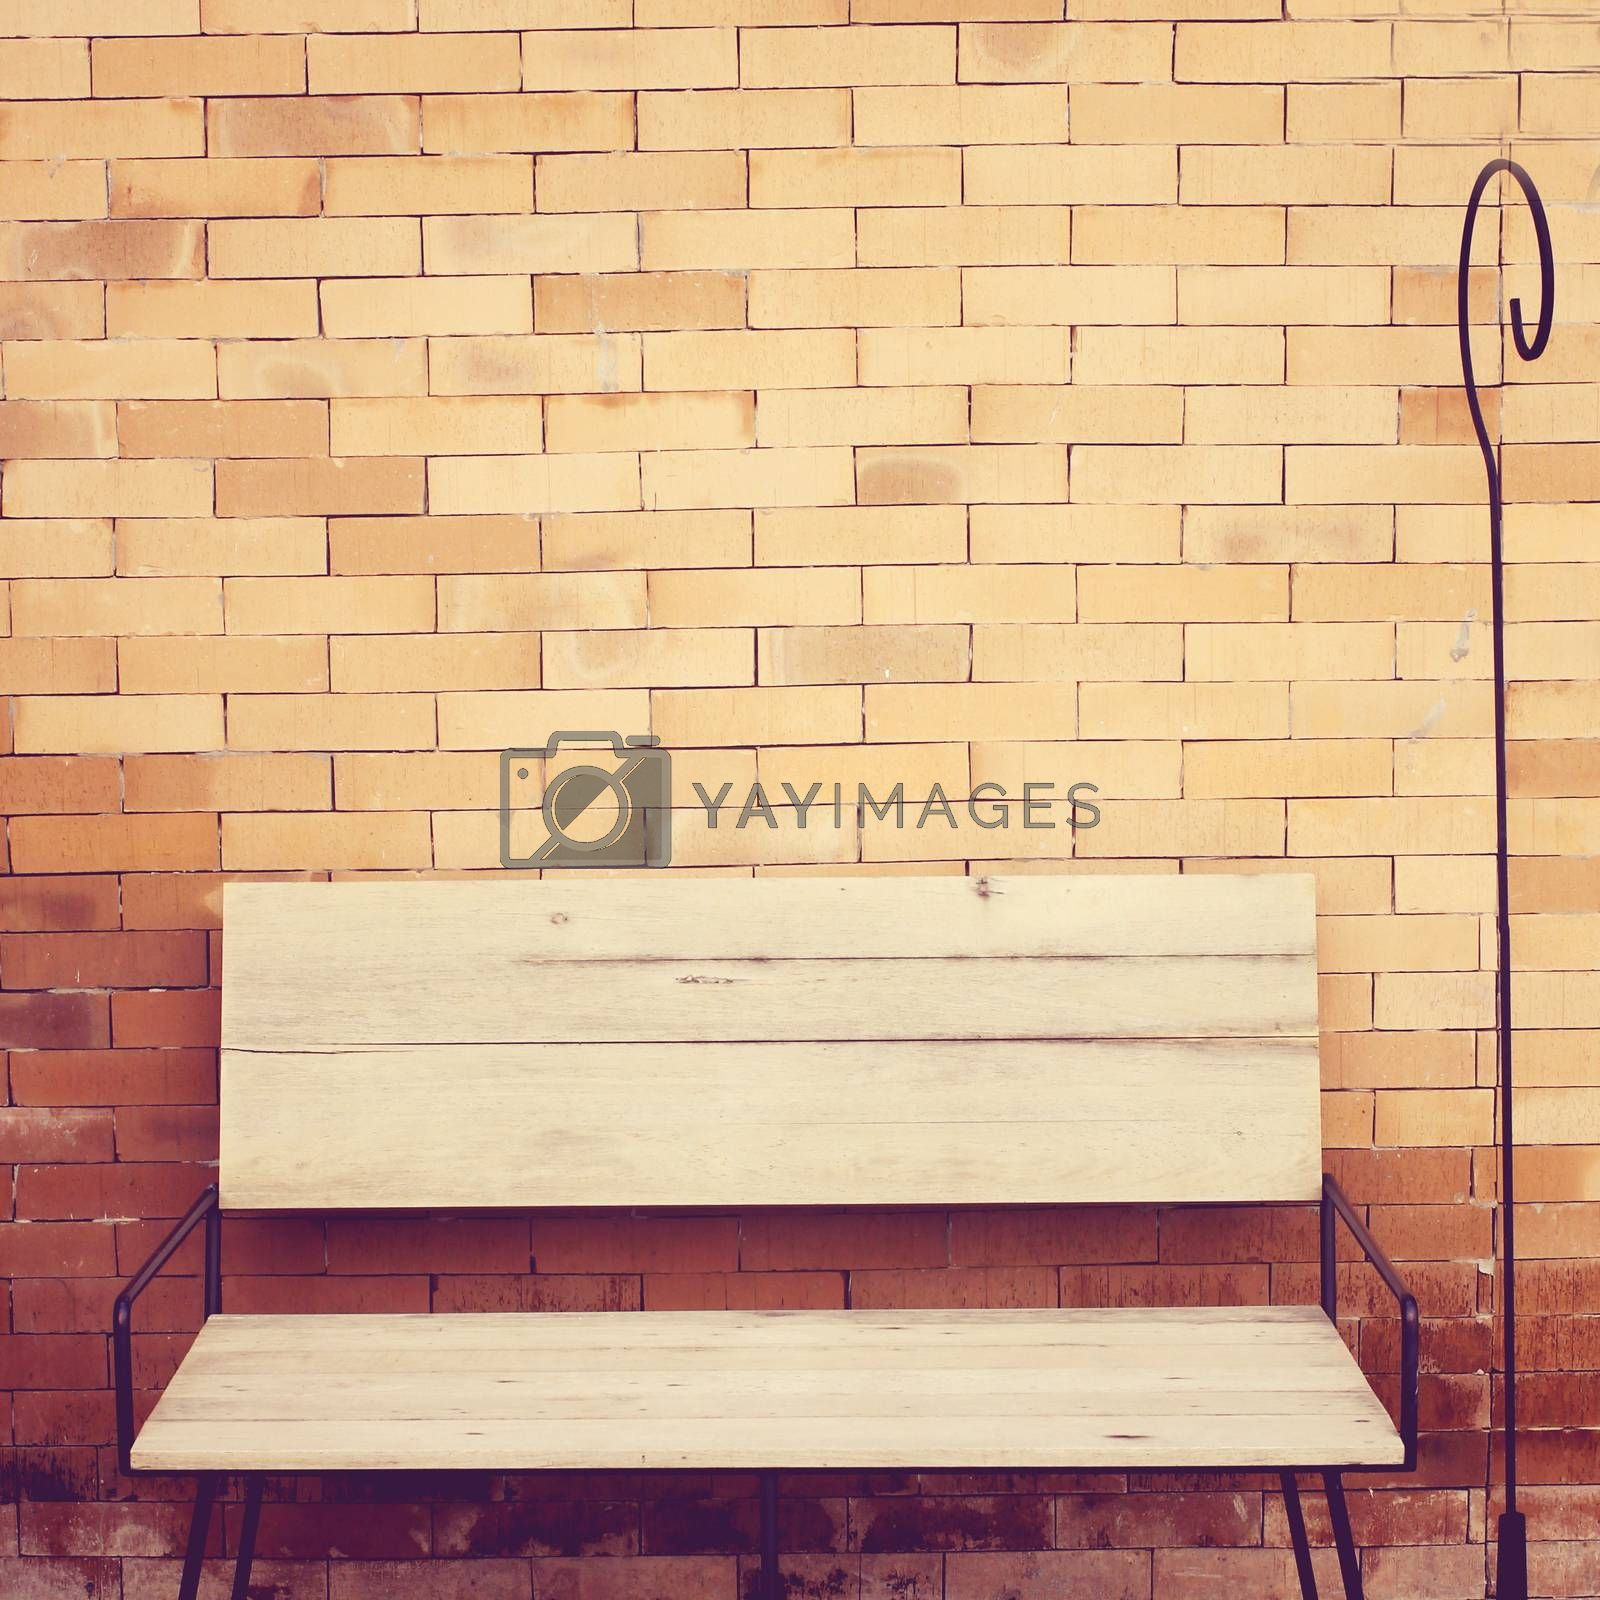 Outdoor wooden chair on brick wall, retro filter effect